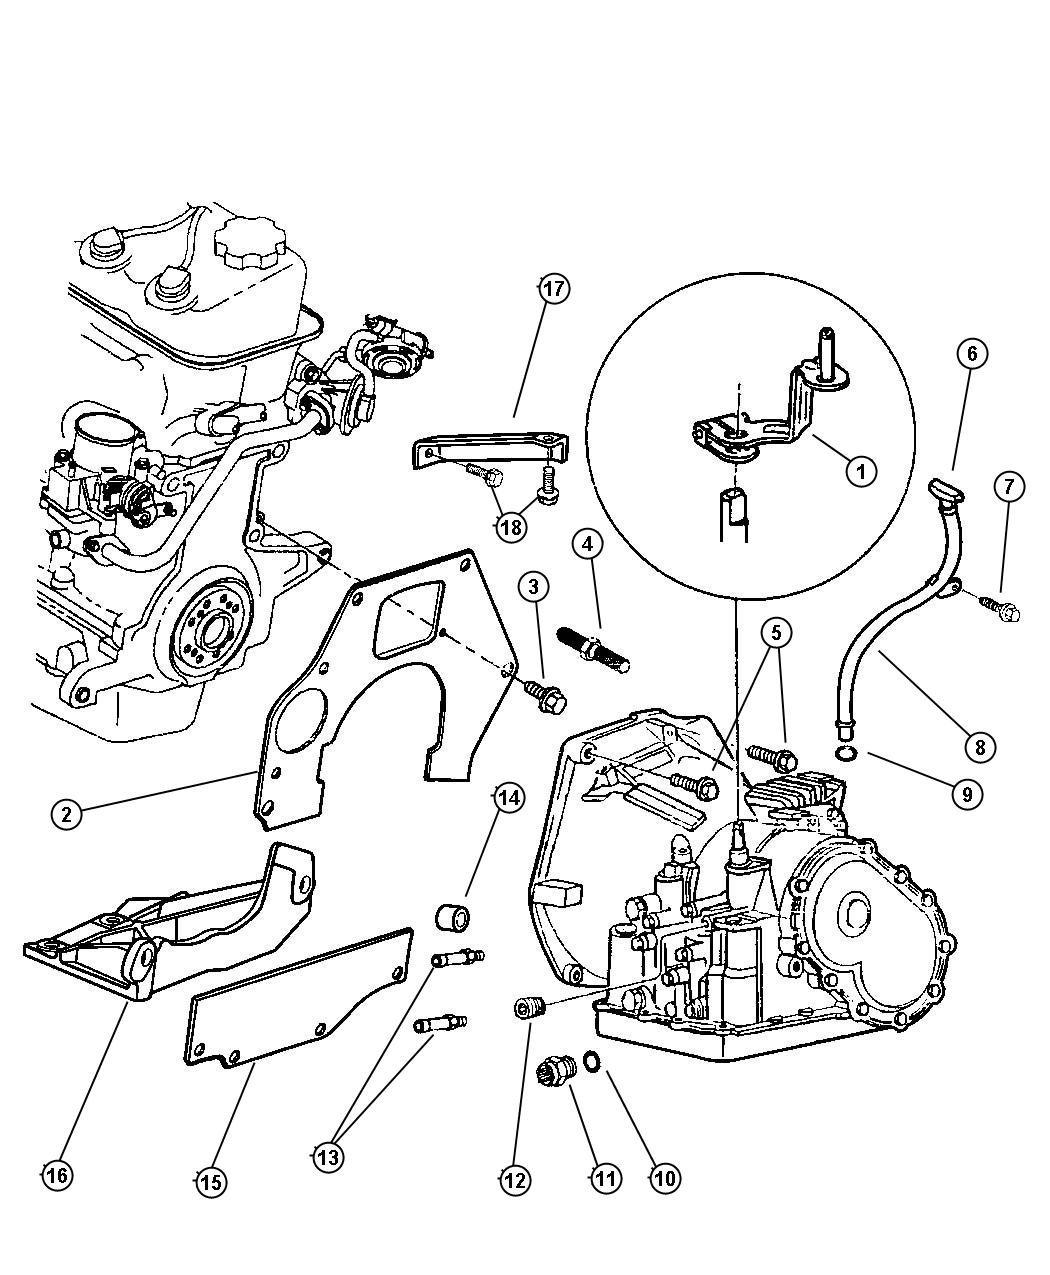 03 Dodge Neon Engine Diagram. 03. Free Wiring Diagrams